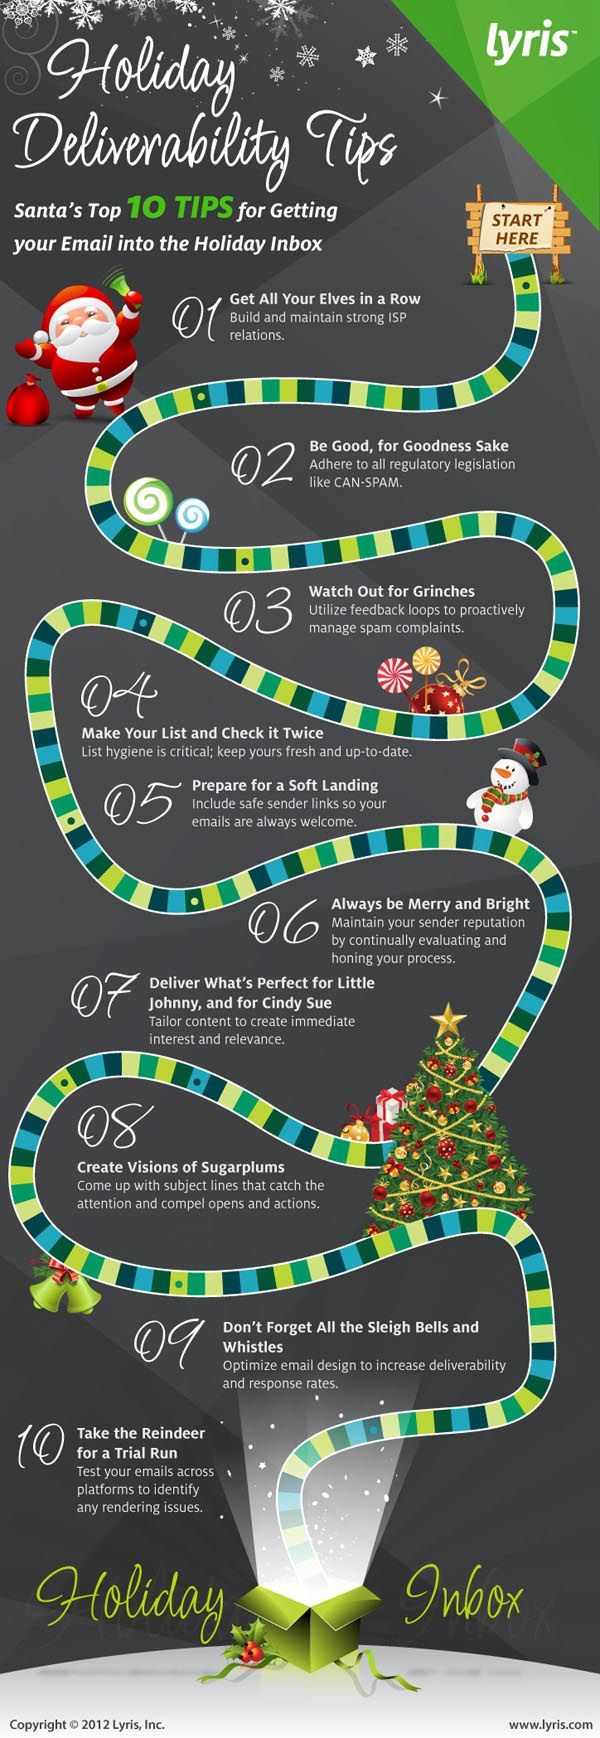 Santa's Top 10 Tips for Getting Your Email into the Holiday Inbox via Lyris